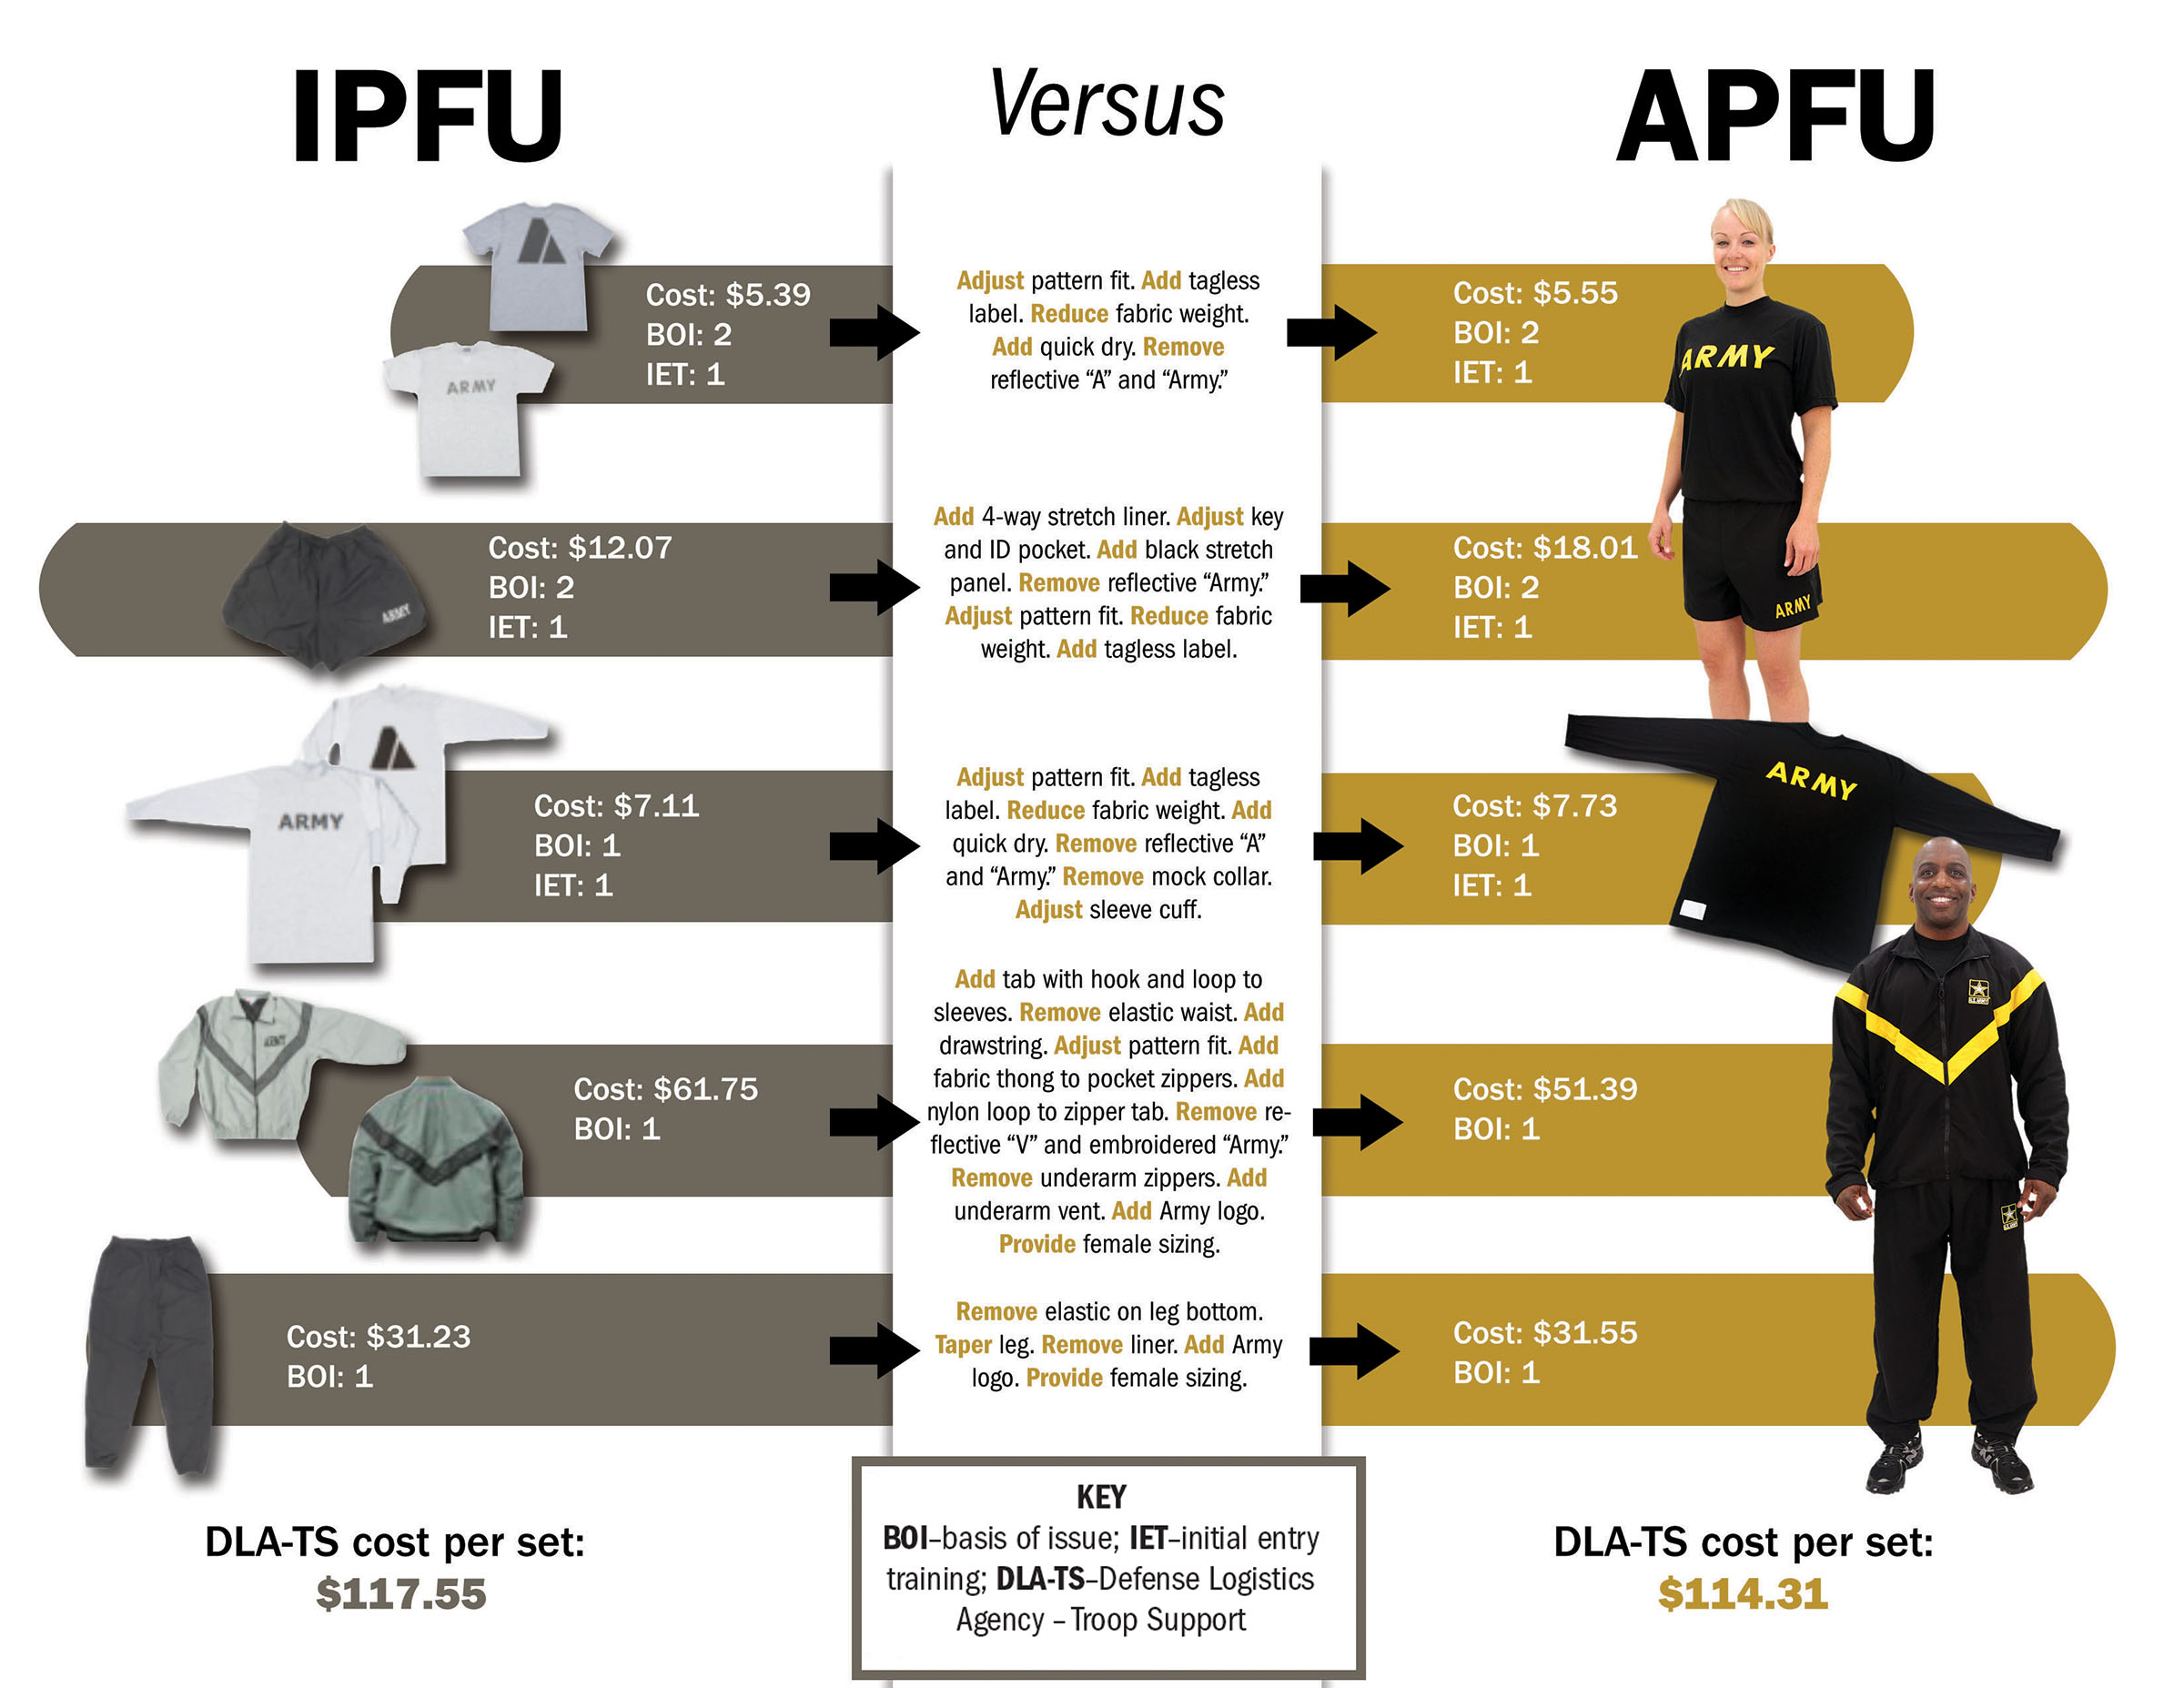 Numerous complaints about the Improved Physical Fitness Uniform then in use led the Army to adopt a new Army Physical Fitness Uniform, which used upgraded materials and fit better. Sound business principles and cost analysis led to a decision to phase in the new APFU gradually.